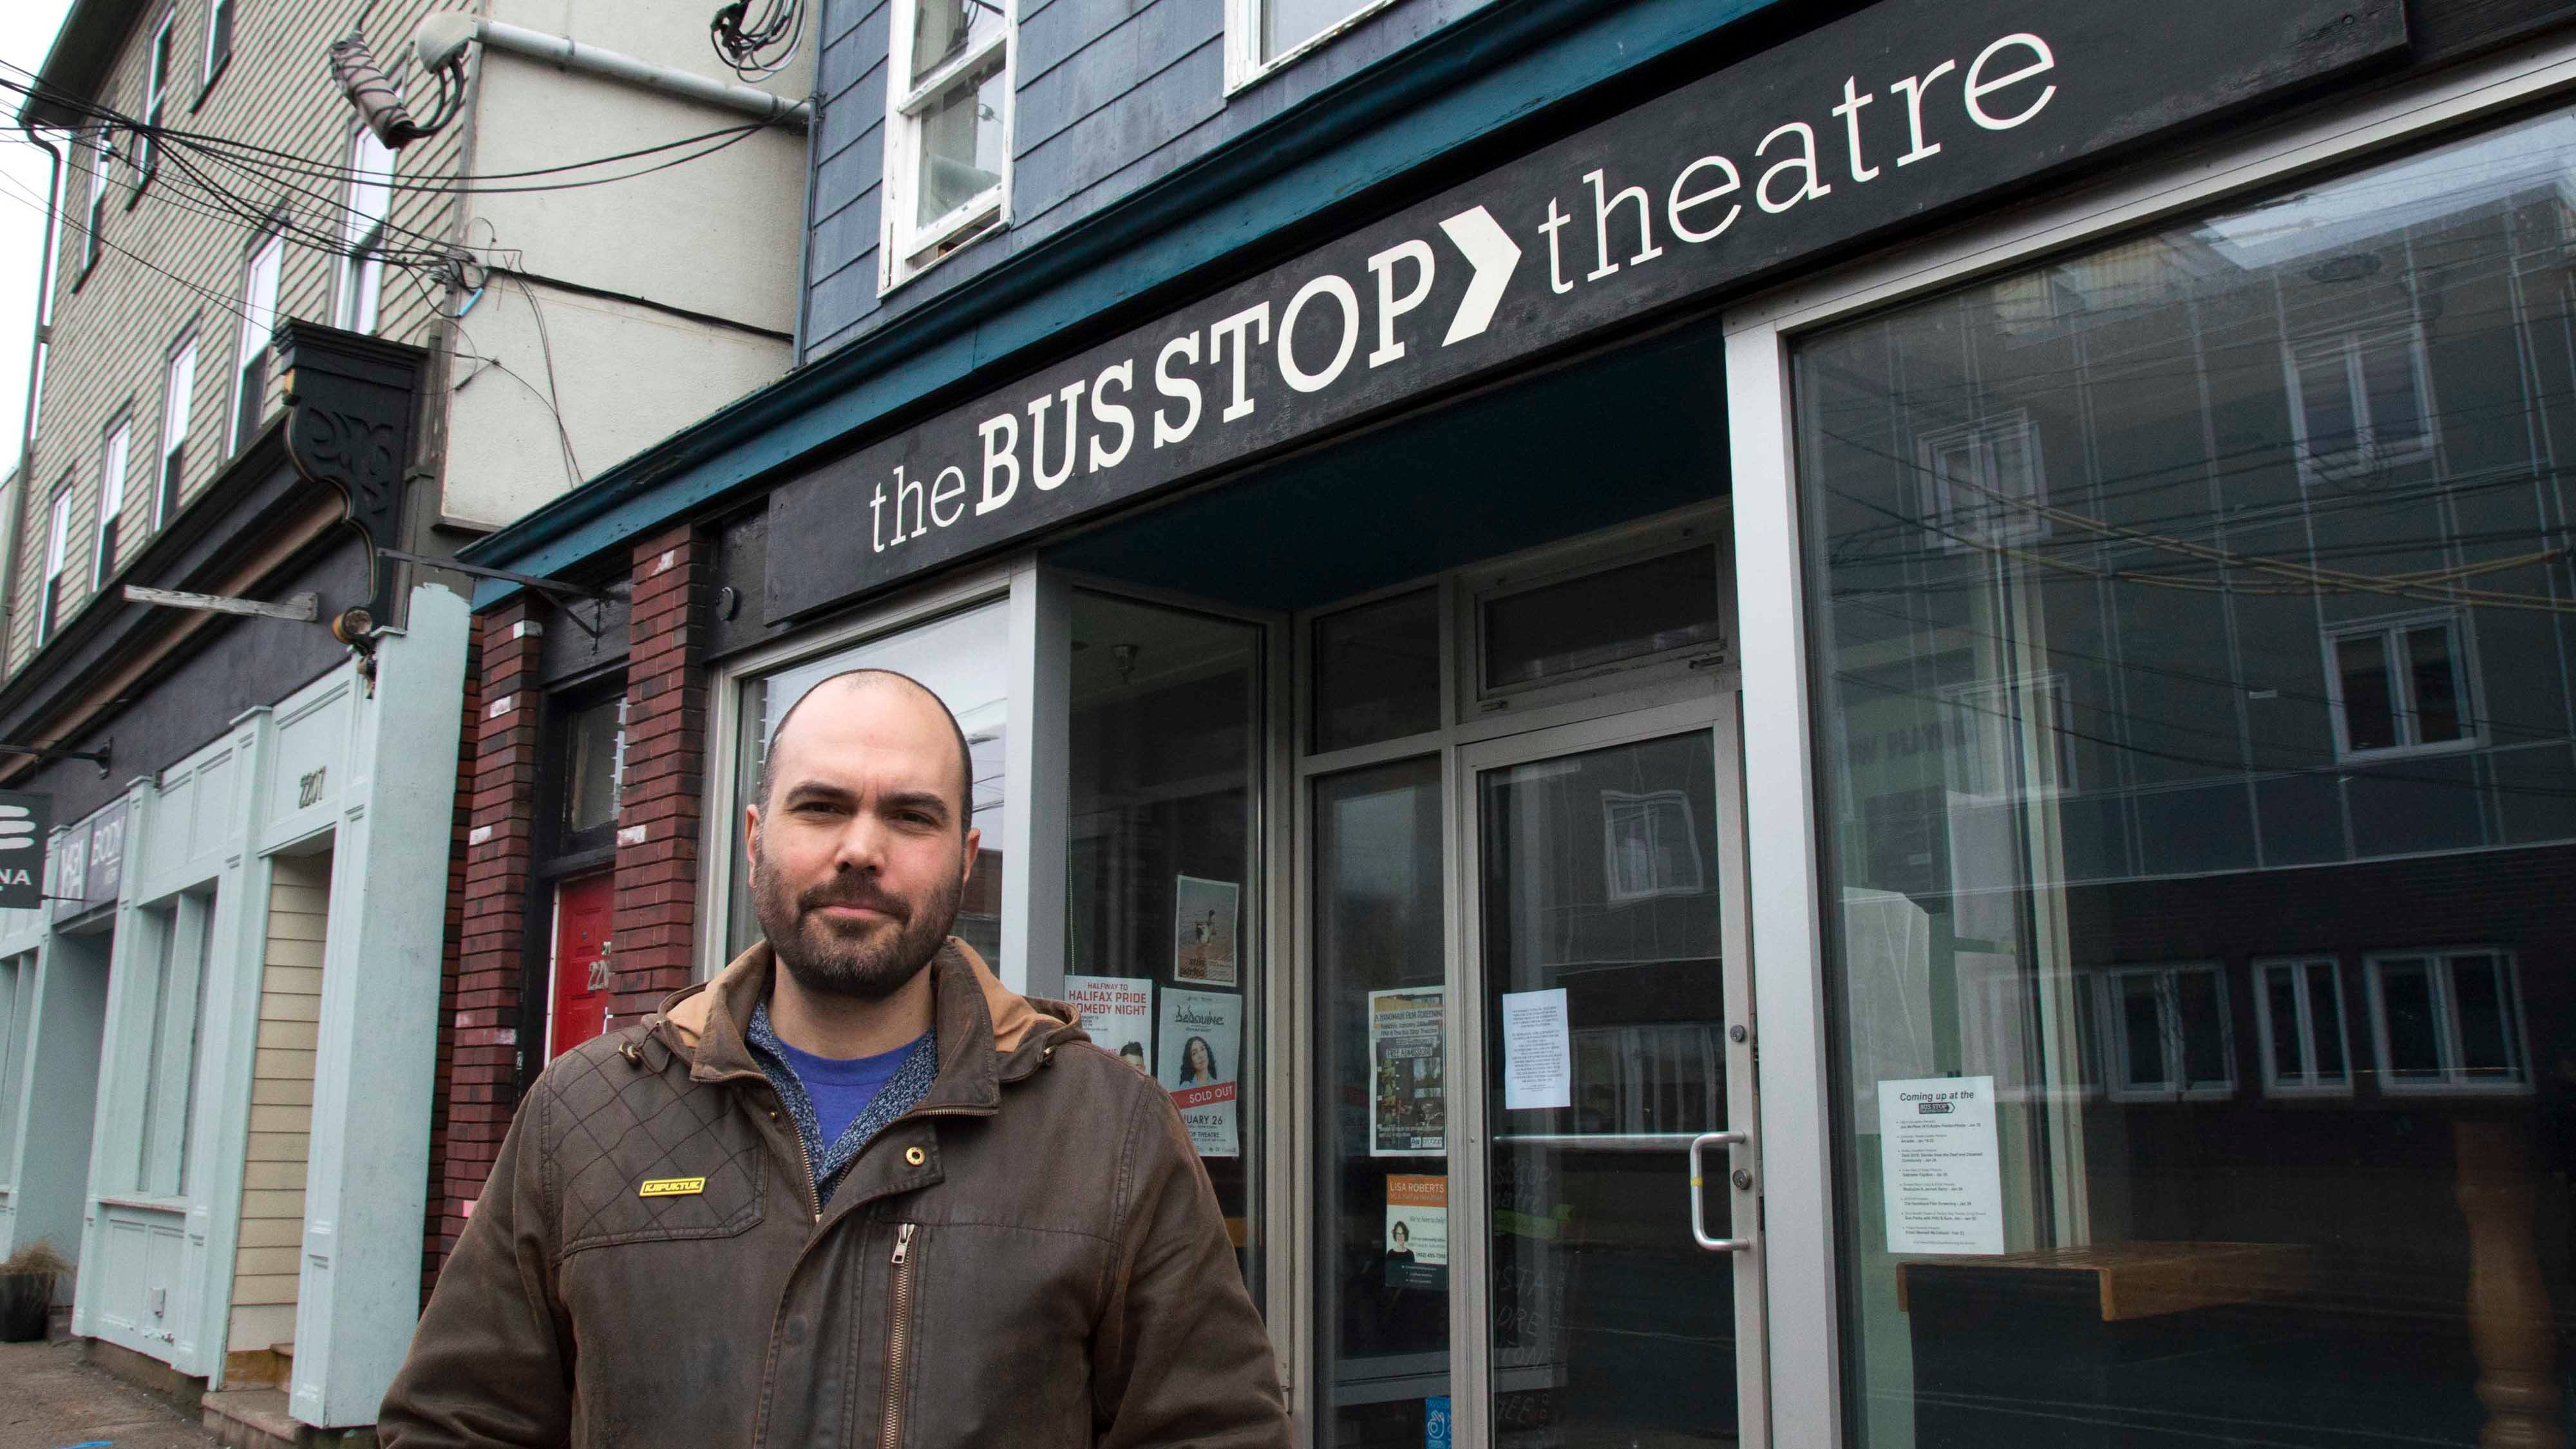 The Bus Stop Theatre's executive director, Sébastien Labelle, stands outside the front doors.